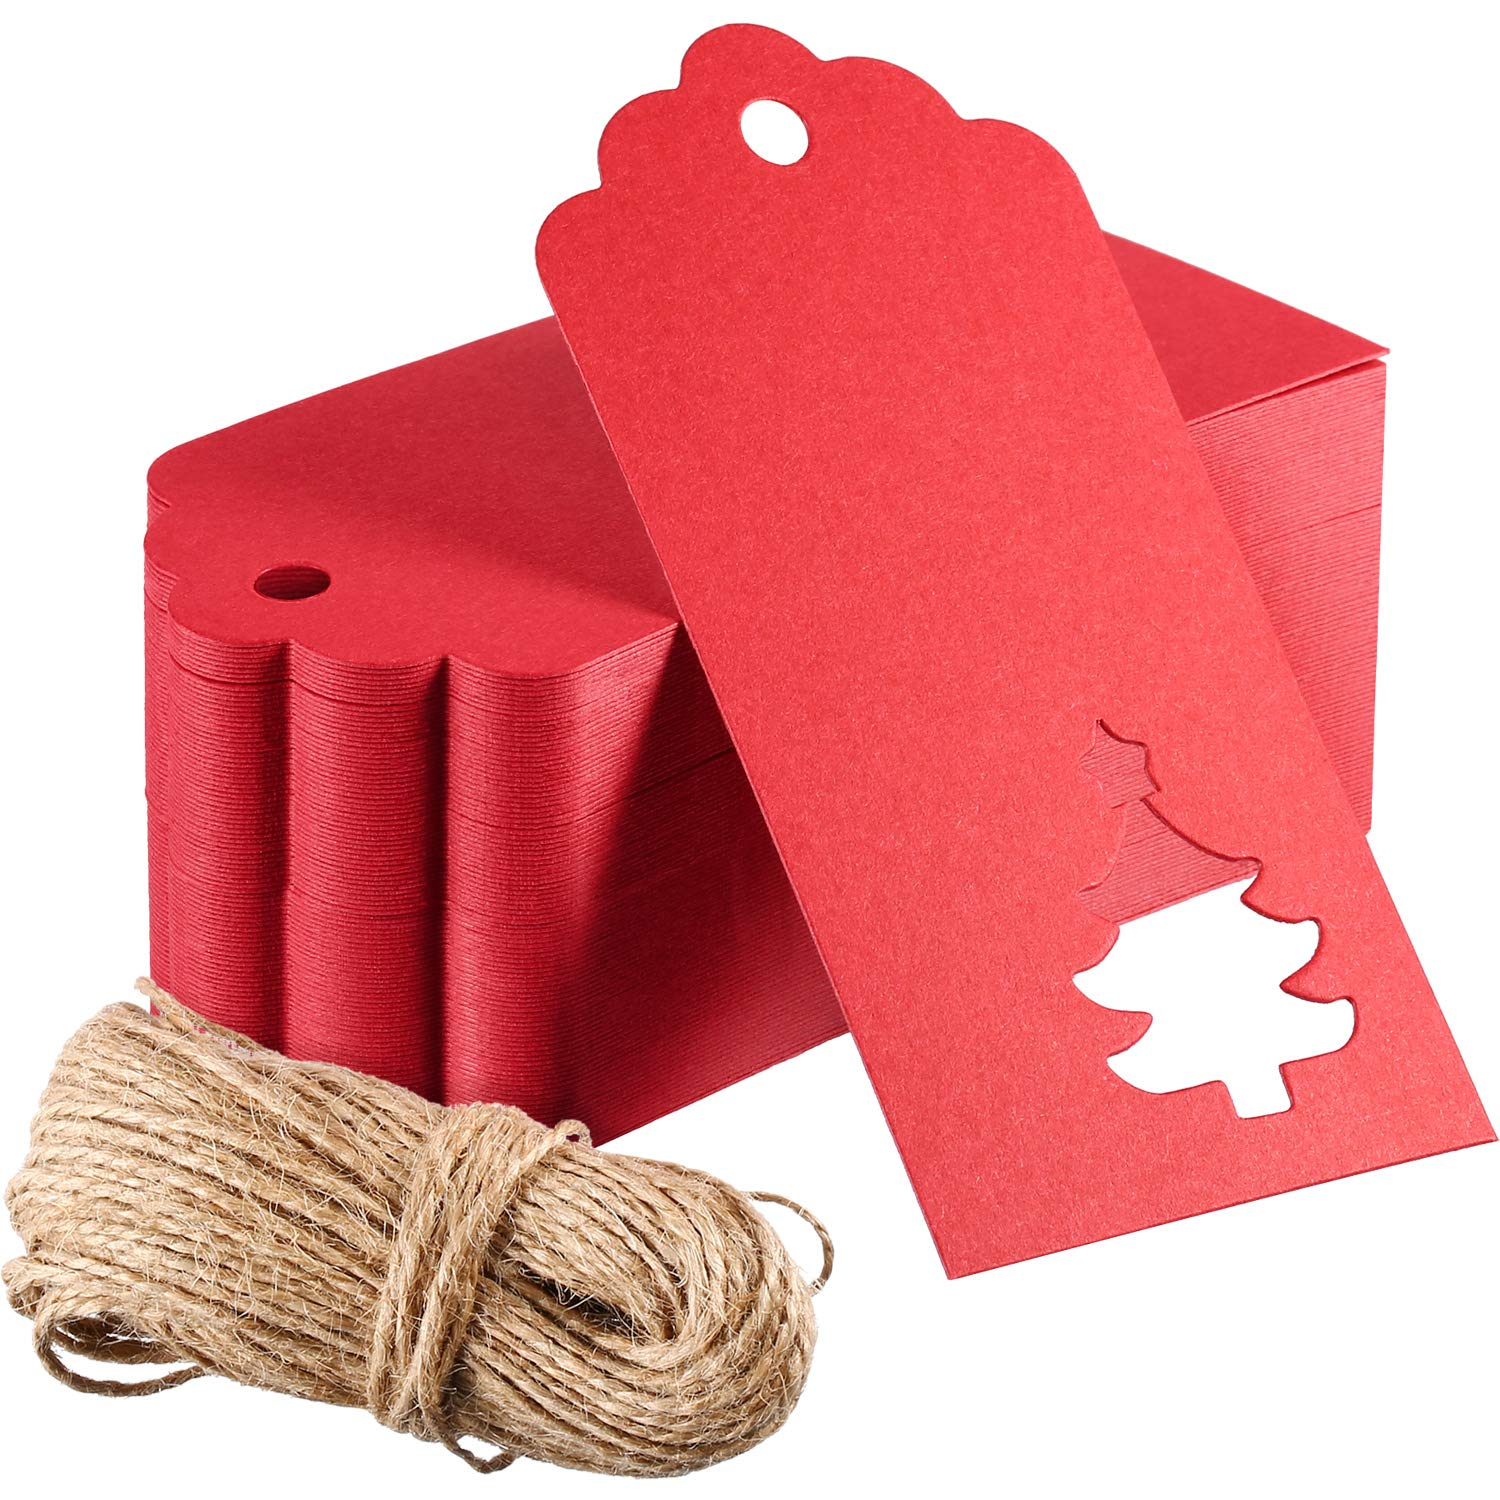 Outus 100 Pieces Kraft Paper Gift Tags Hollow Christmas Tree Design with 66 Feet Twines for Wedding Favor Christmas (Red)